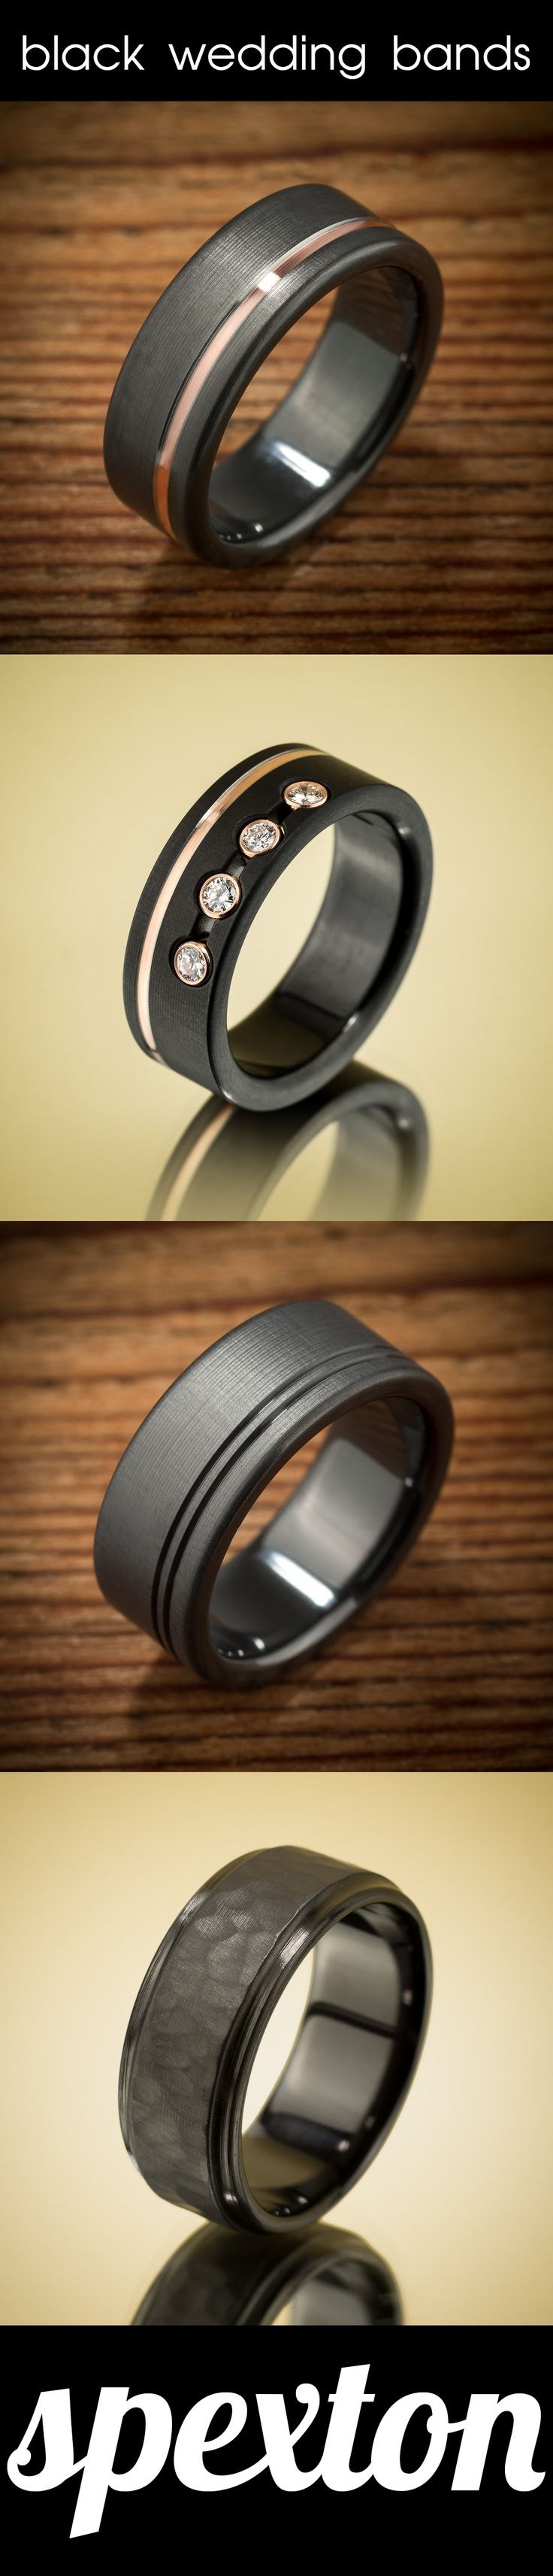 Best 25 Groom wedding bands ideas on Pinterest